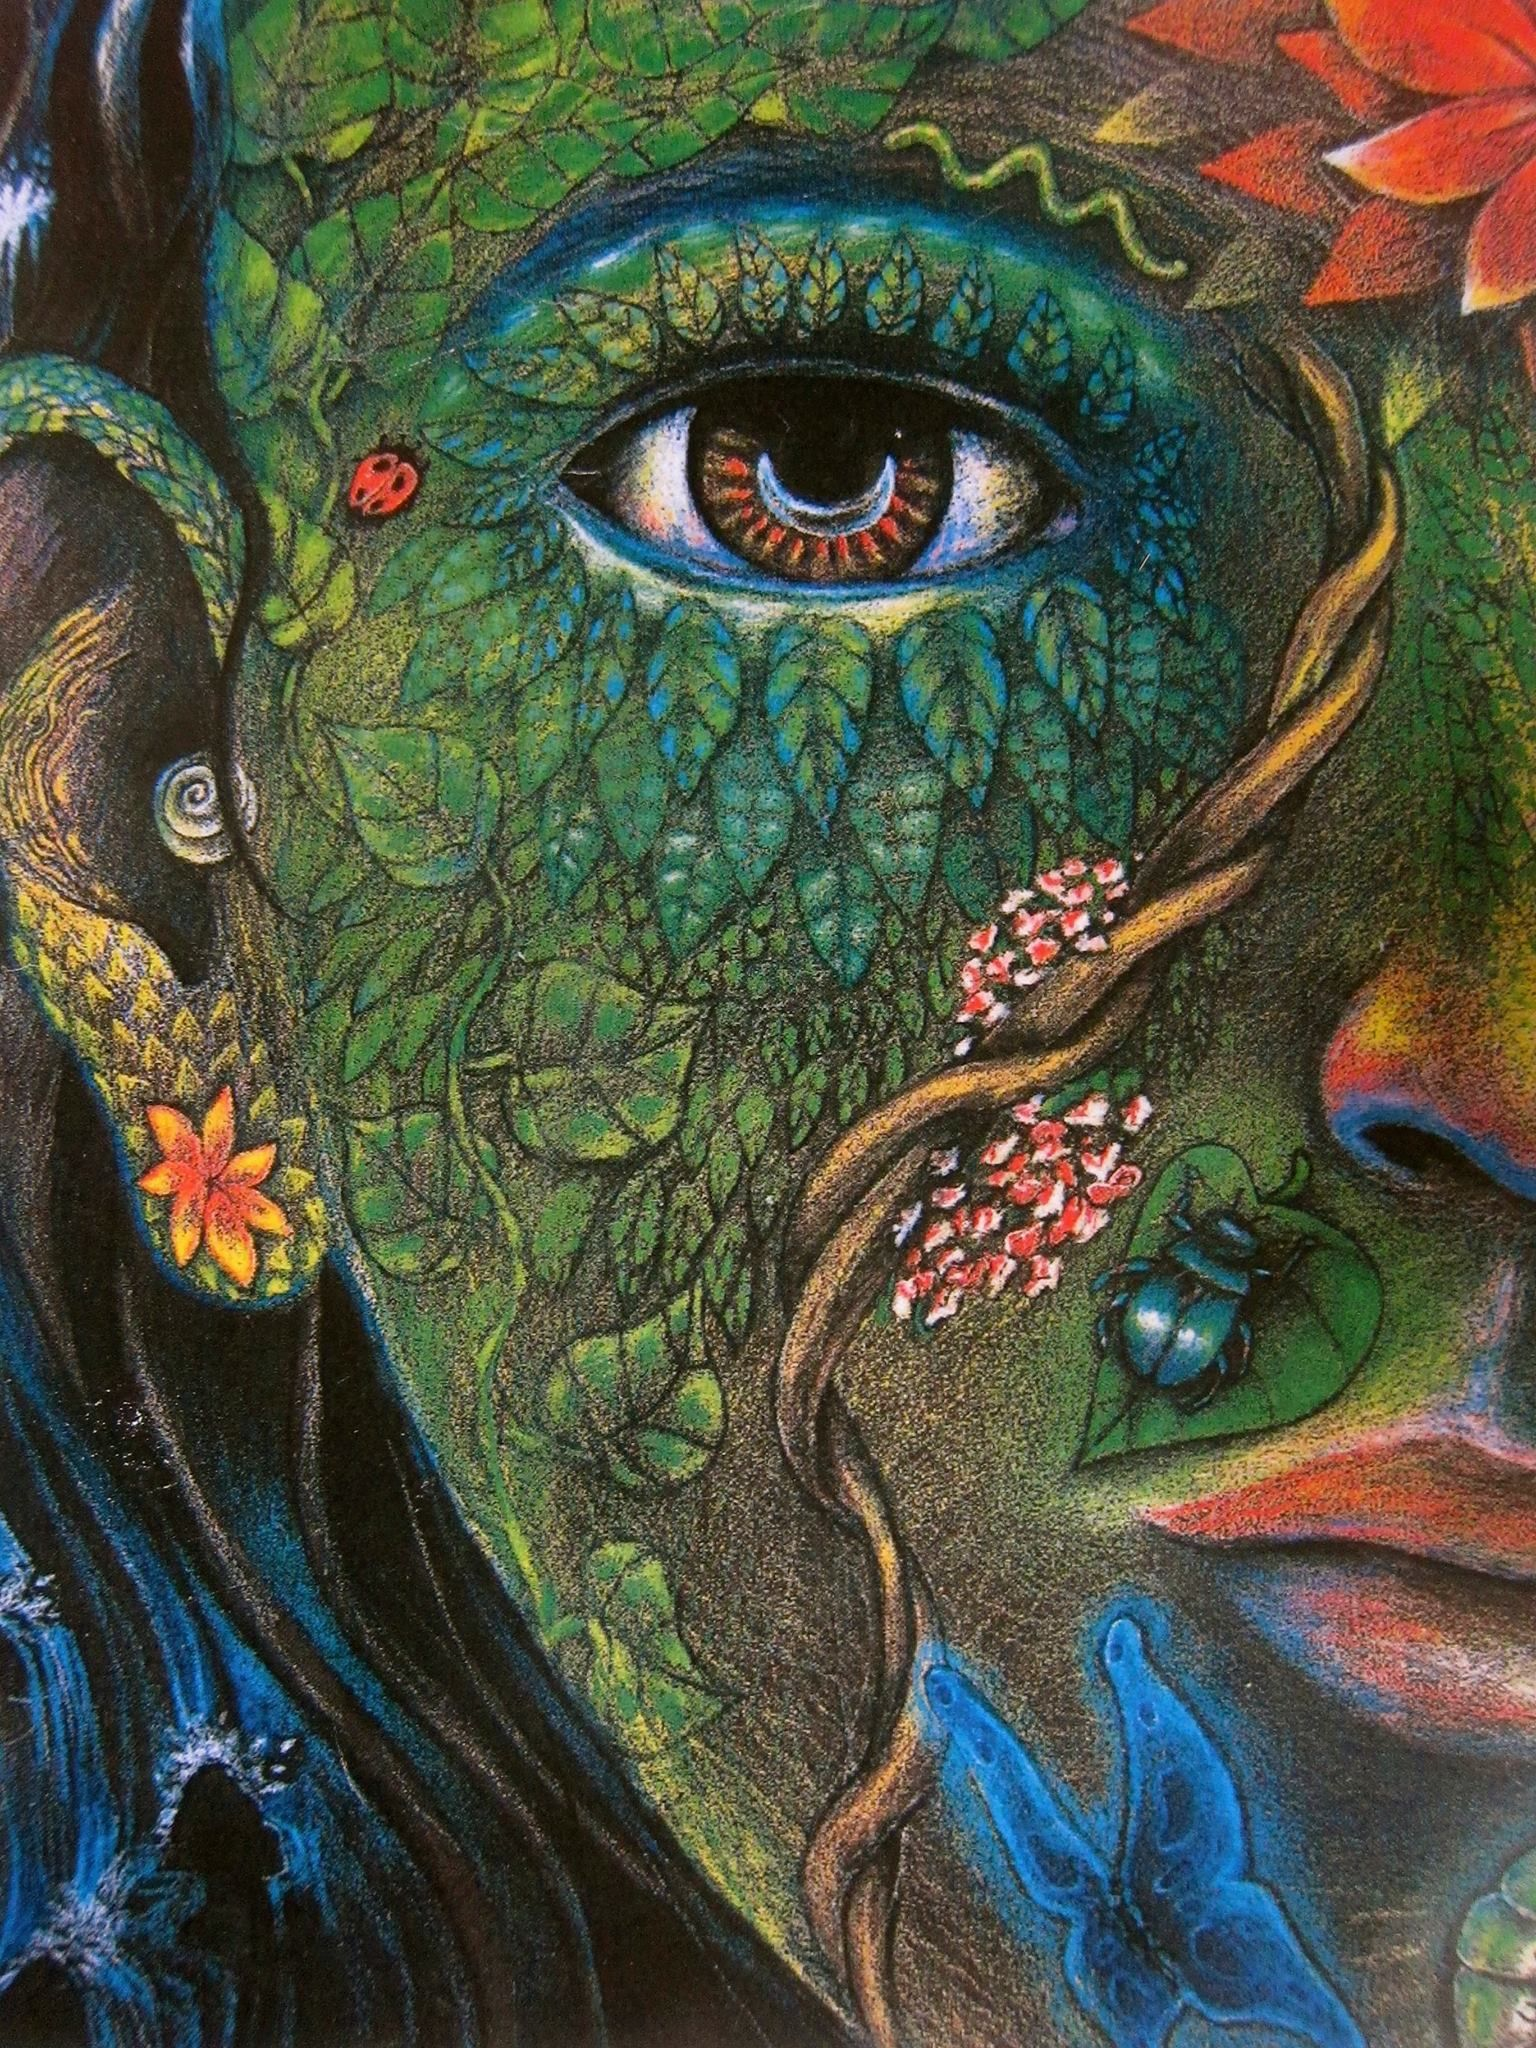 Pin by Bahs Bahsbahs on Shaman art in 2019 | Art, Psychedelic art